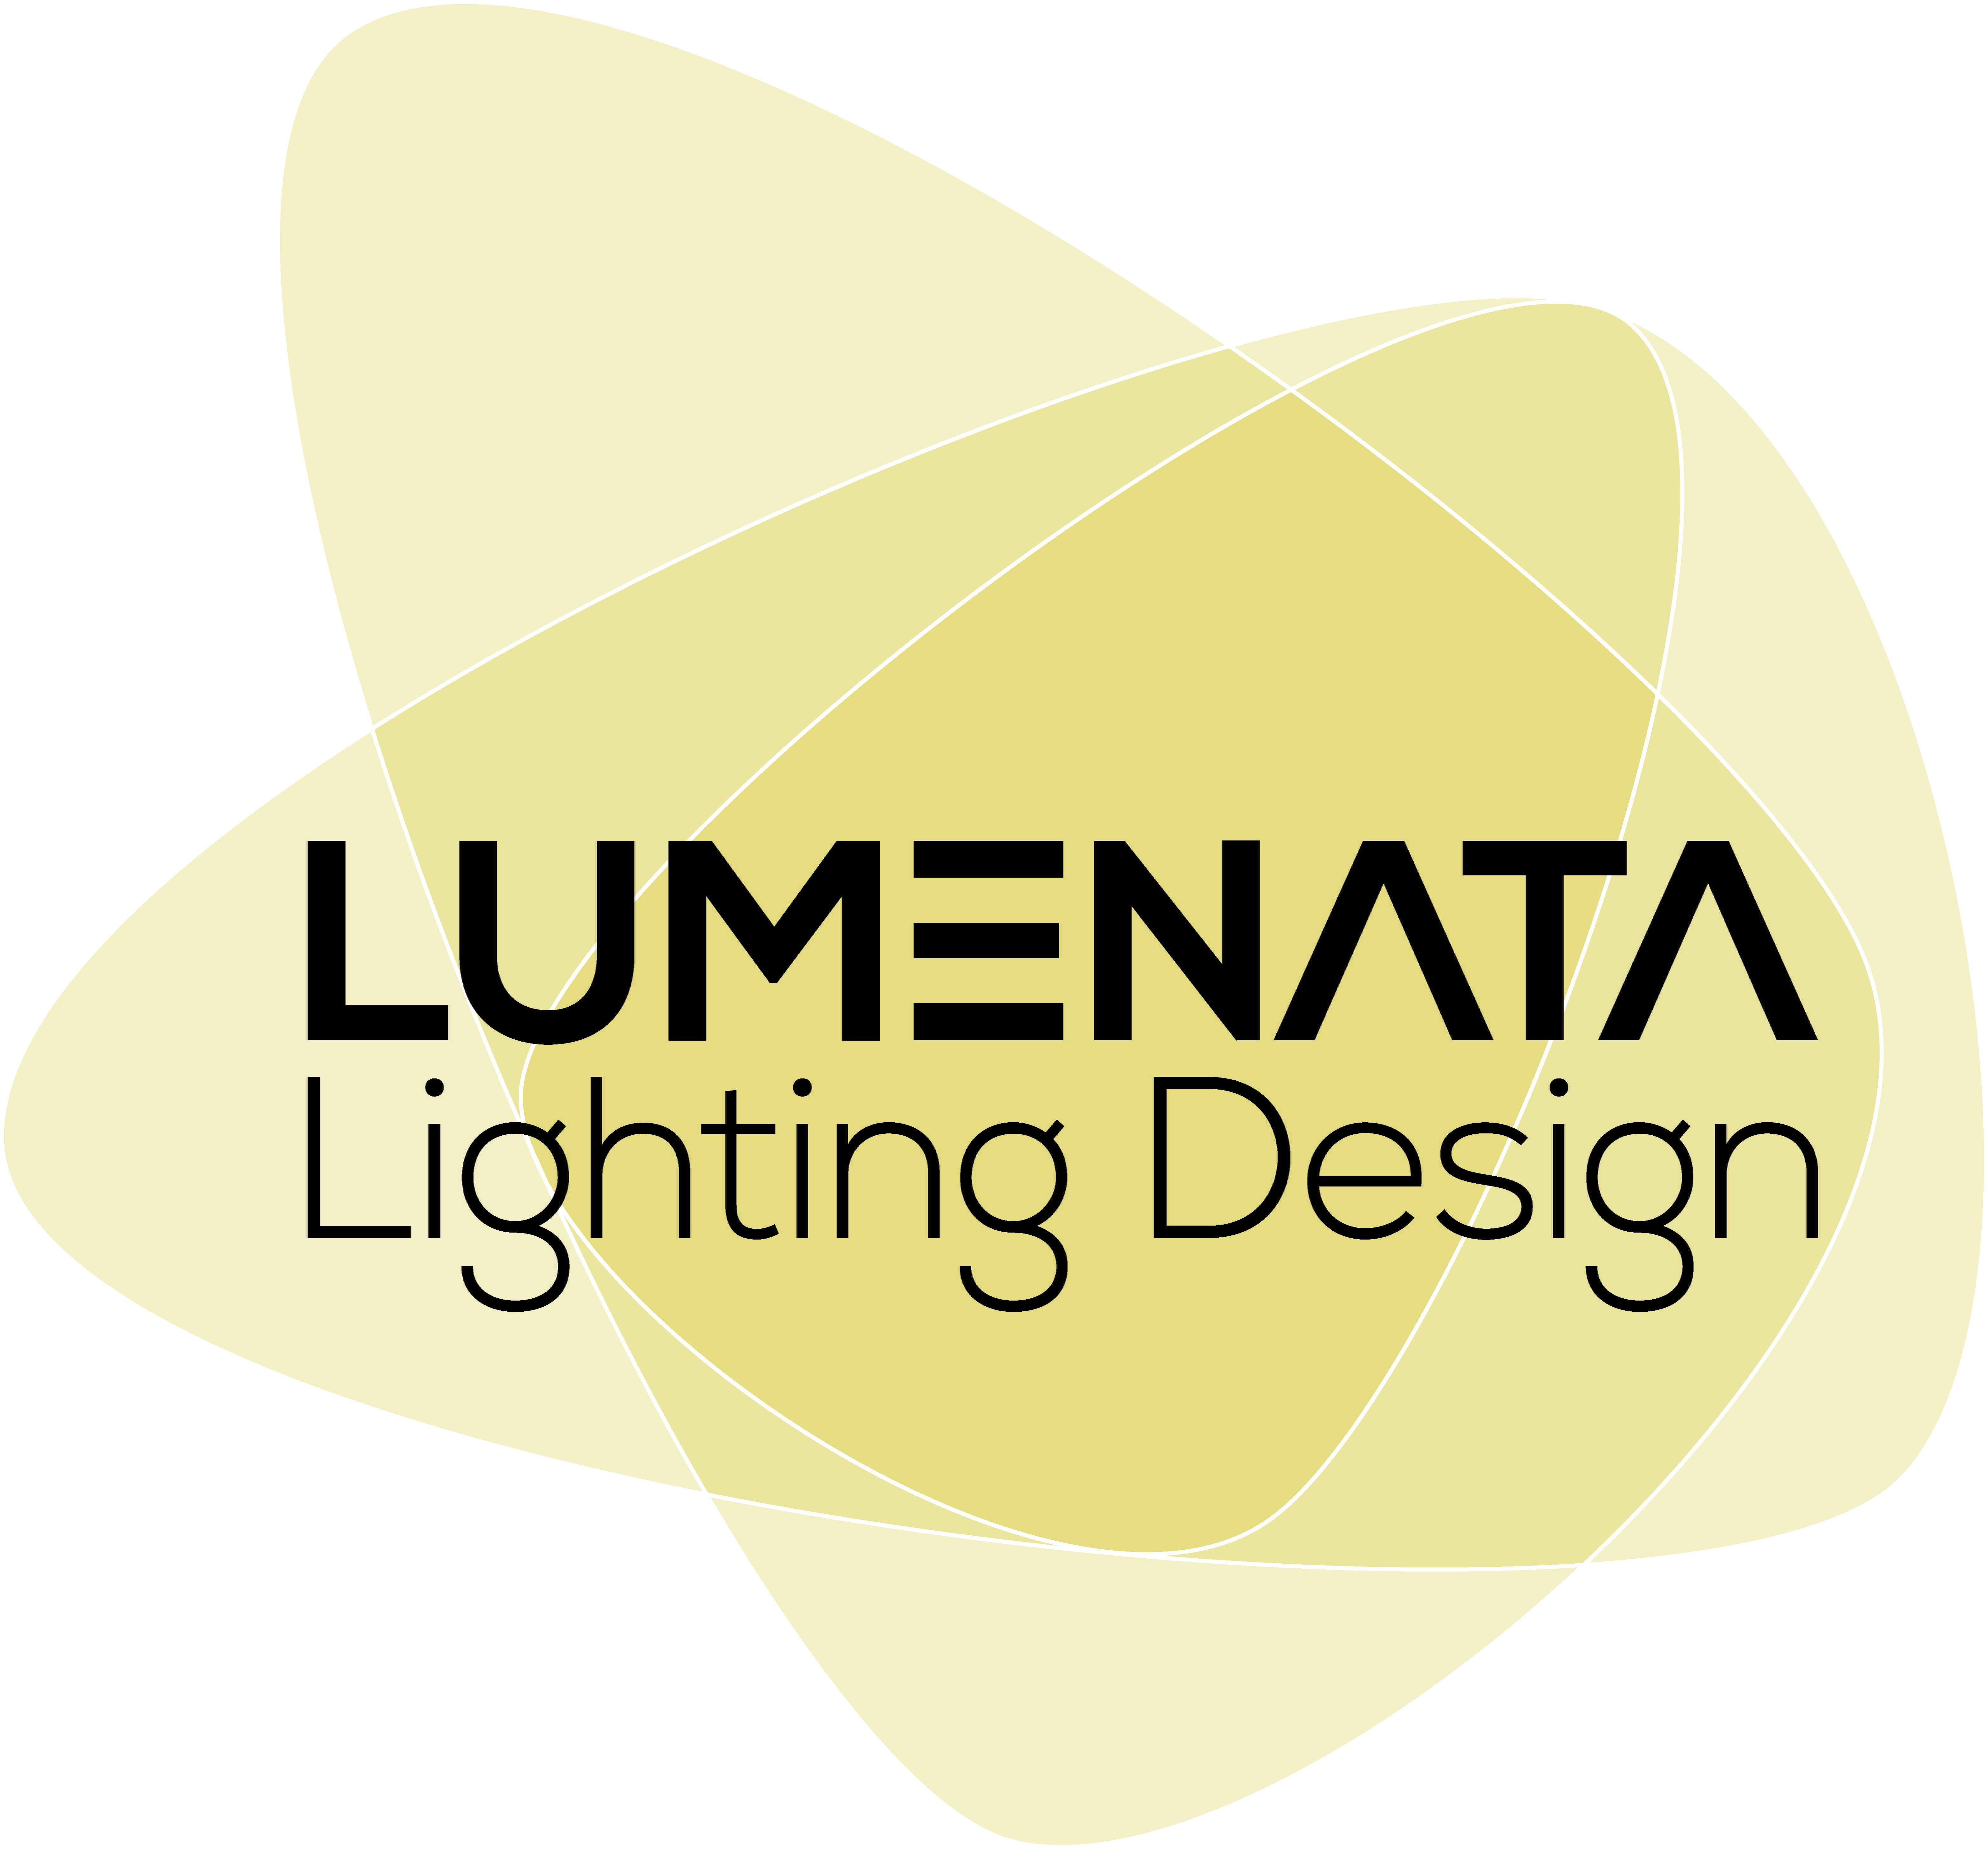 Lumenata lighting design lighting design consultancy for Design consultancy uk